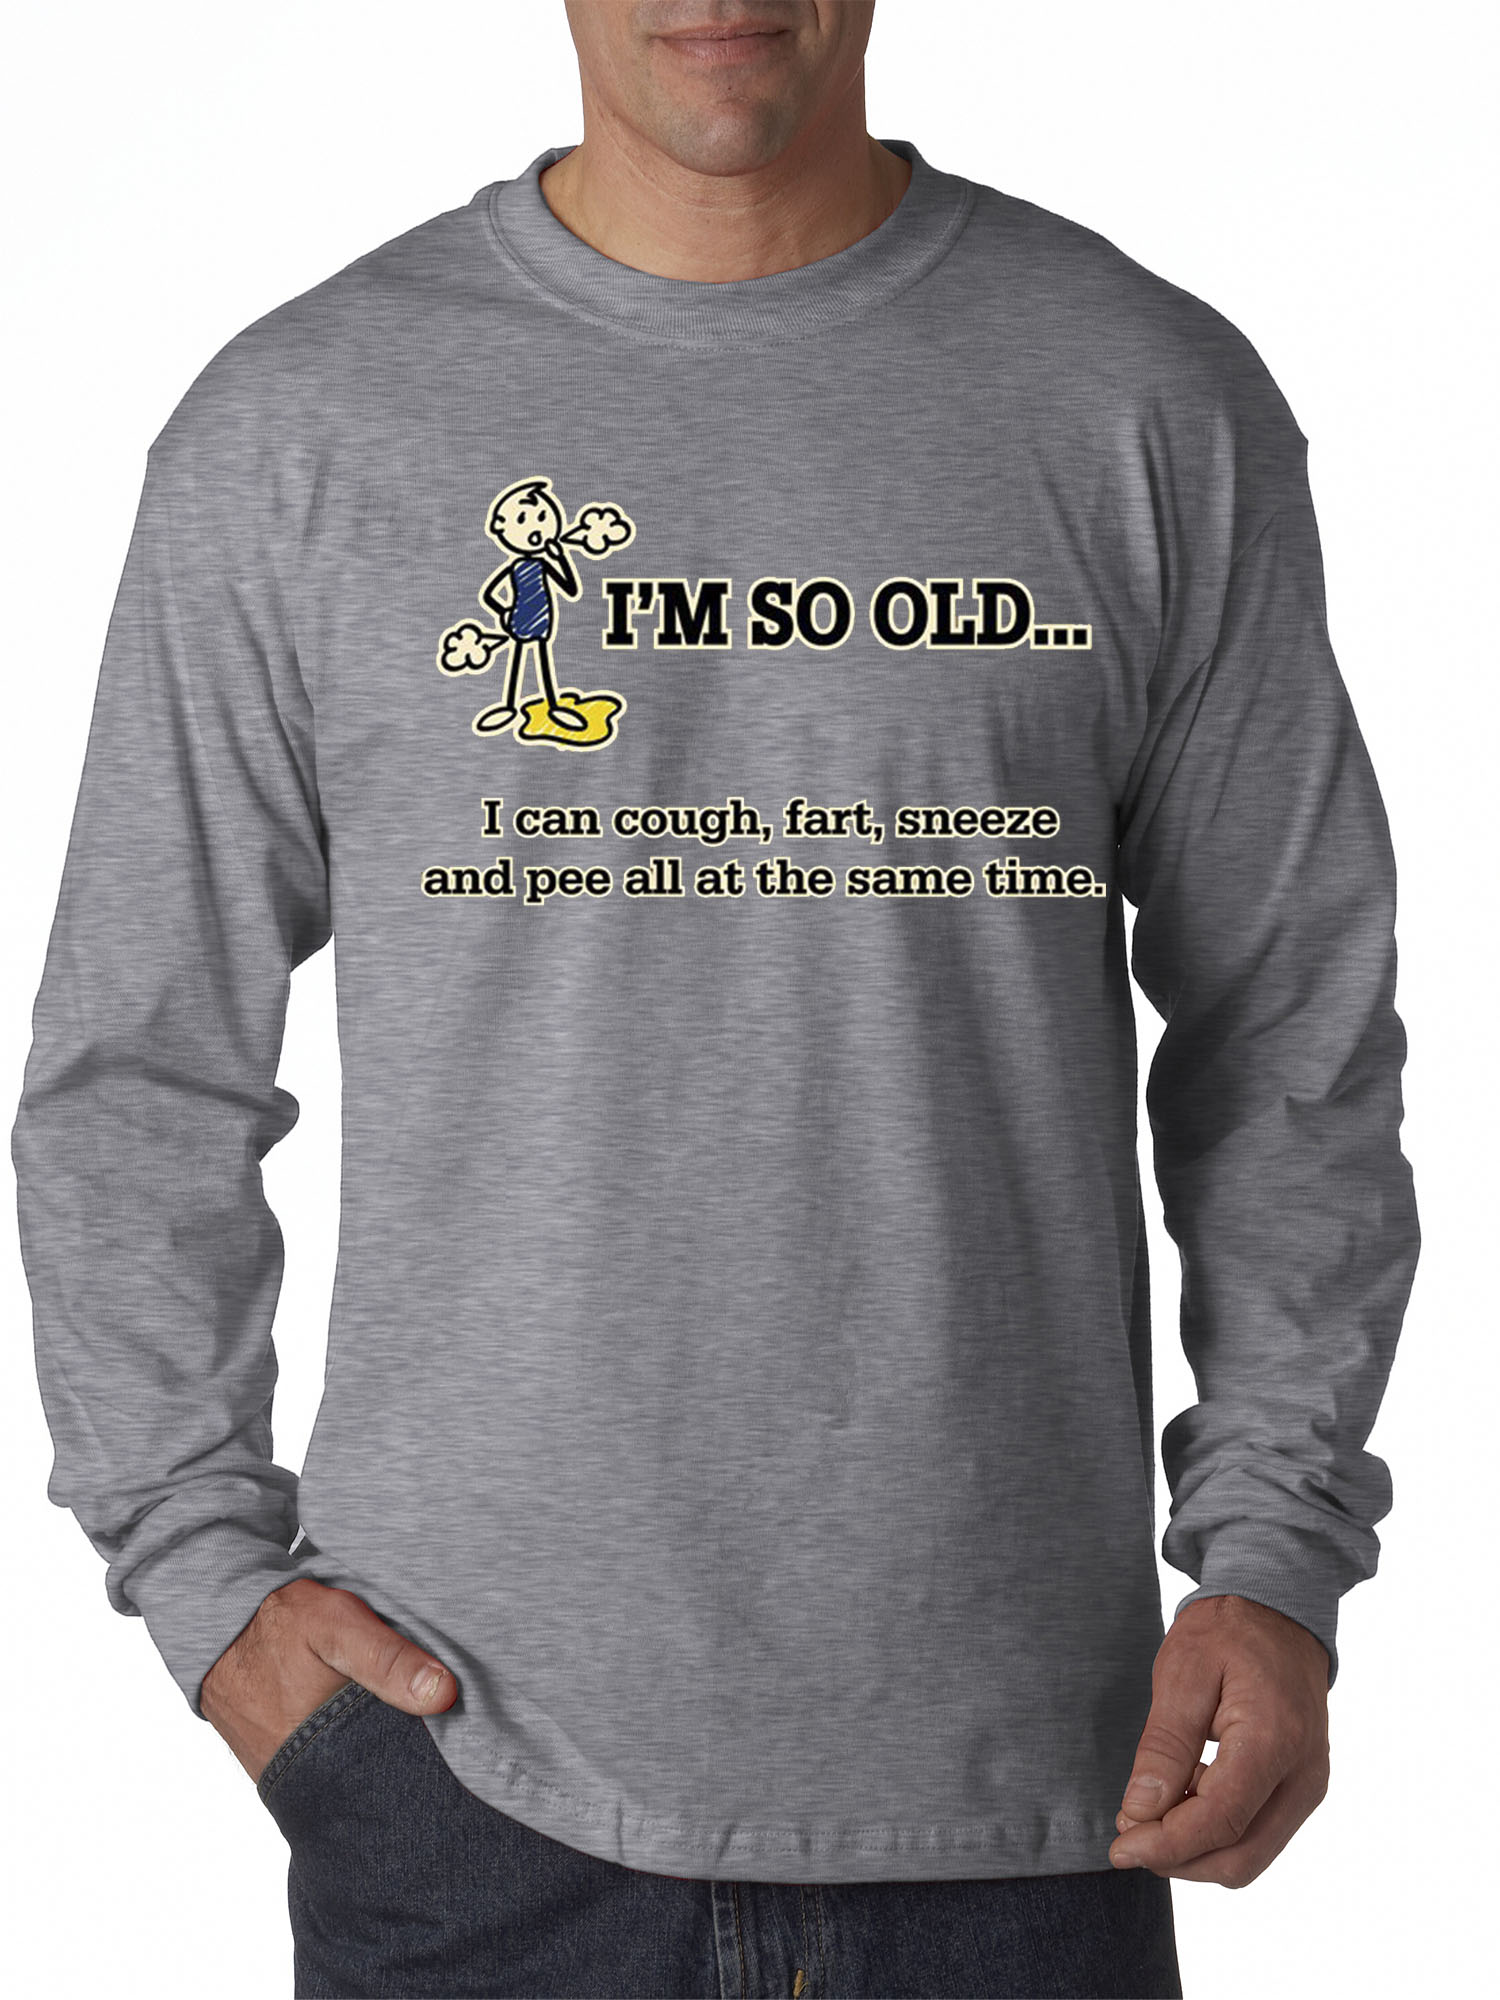 2XL and 3XL FREE SHIPPING Details about  /Levi/'s T-Shirt GRAY New with Tags size